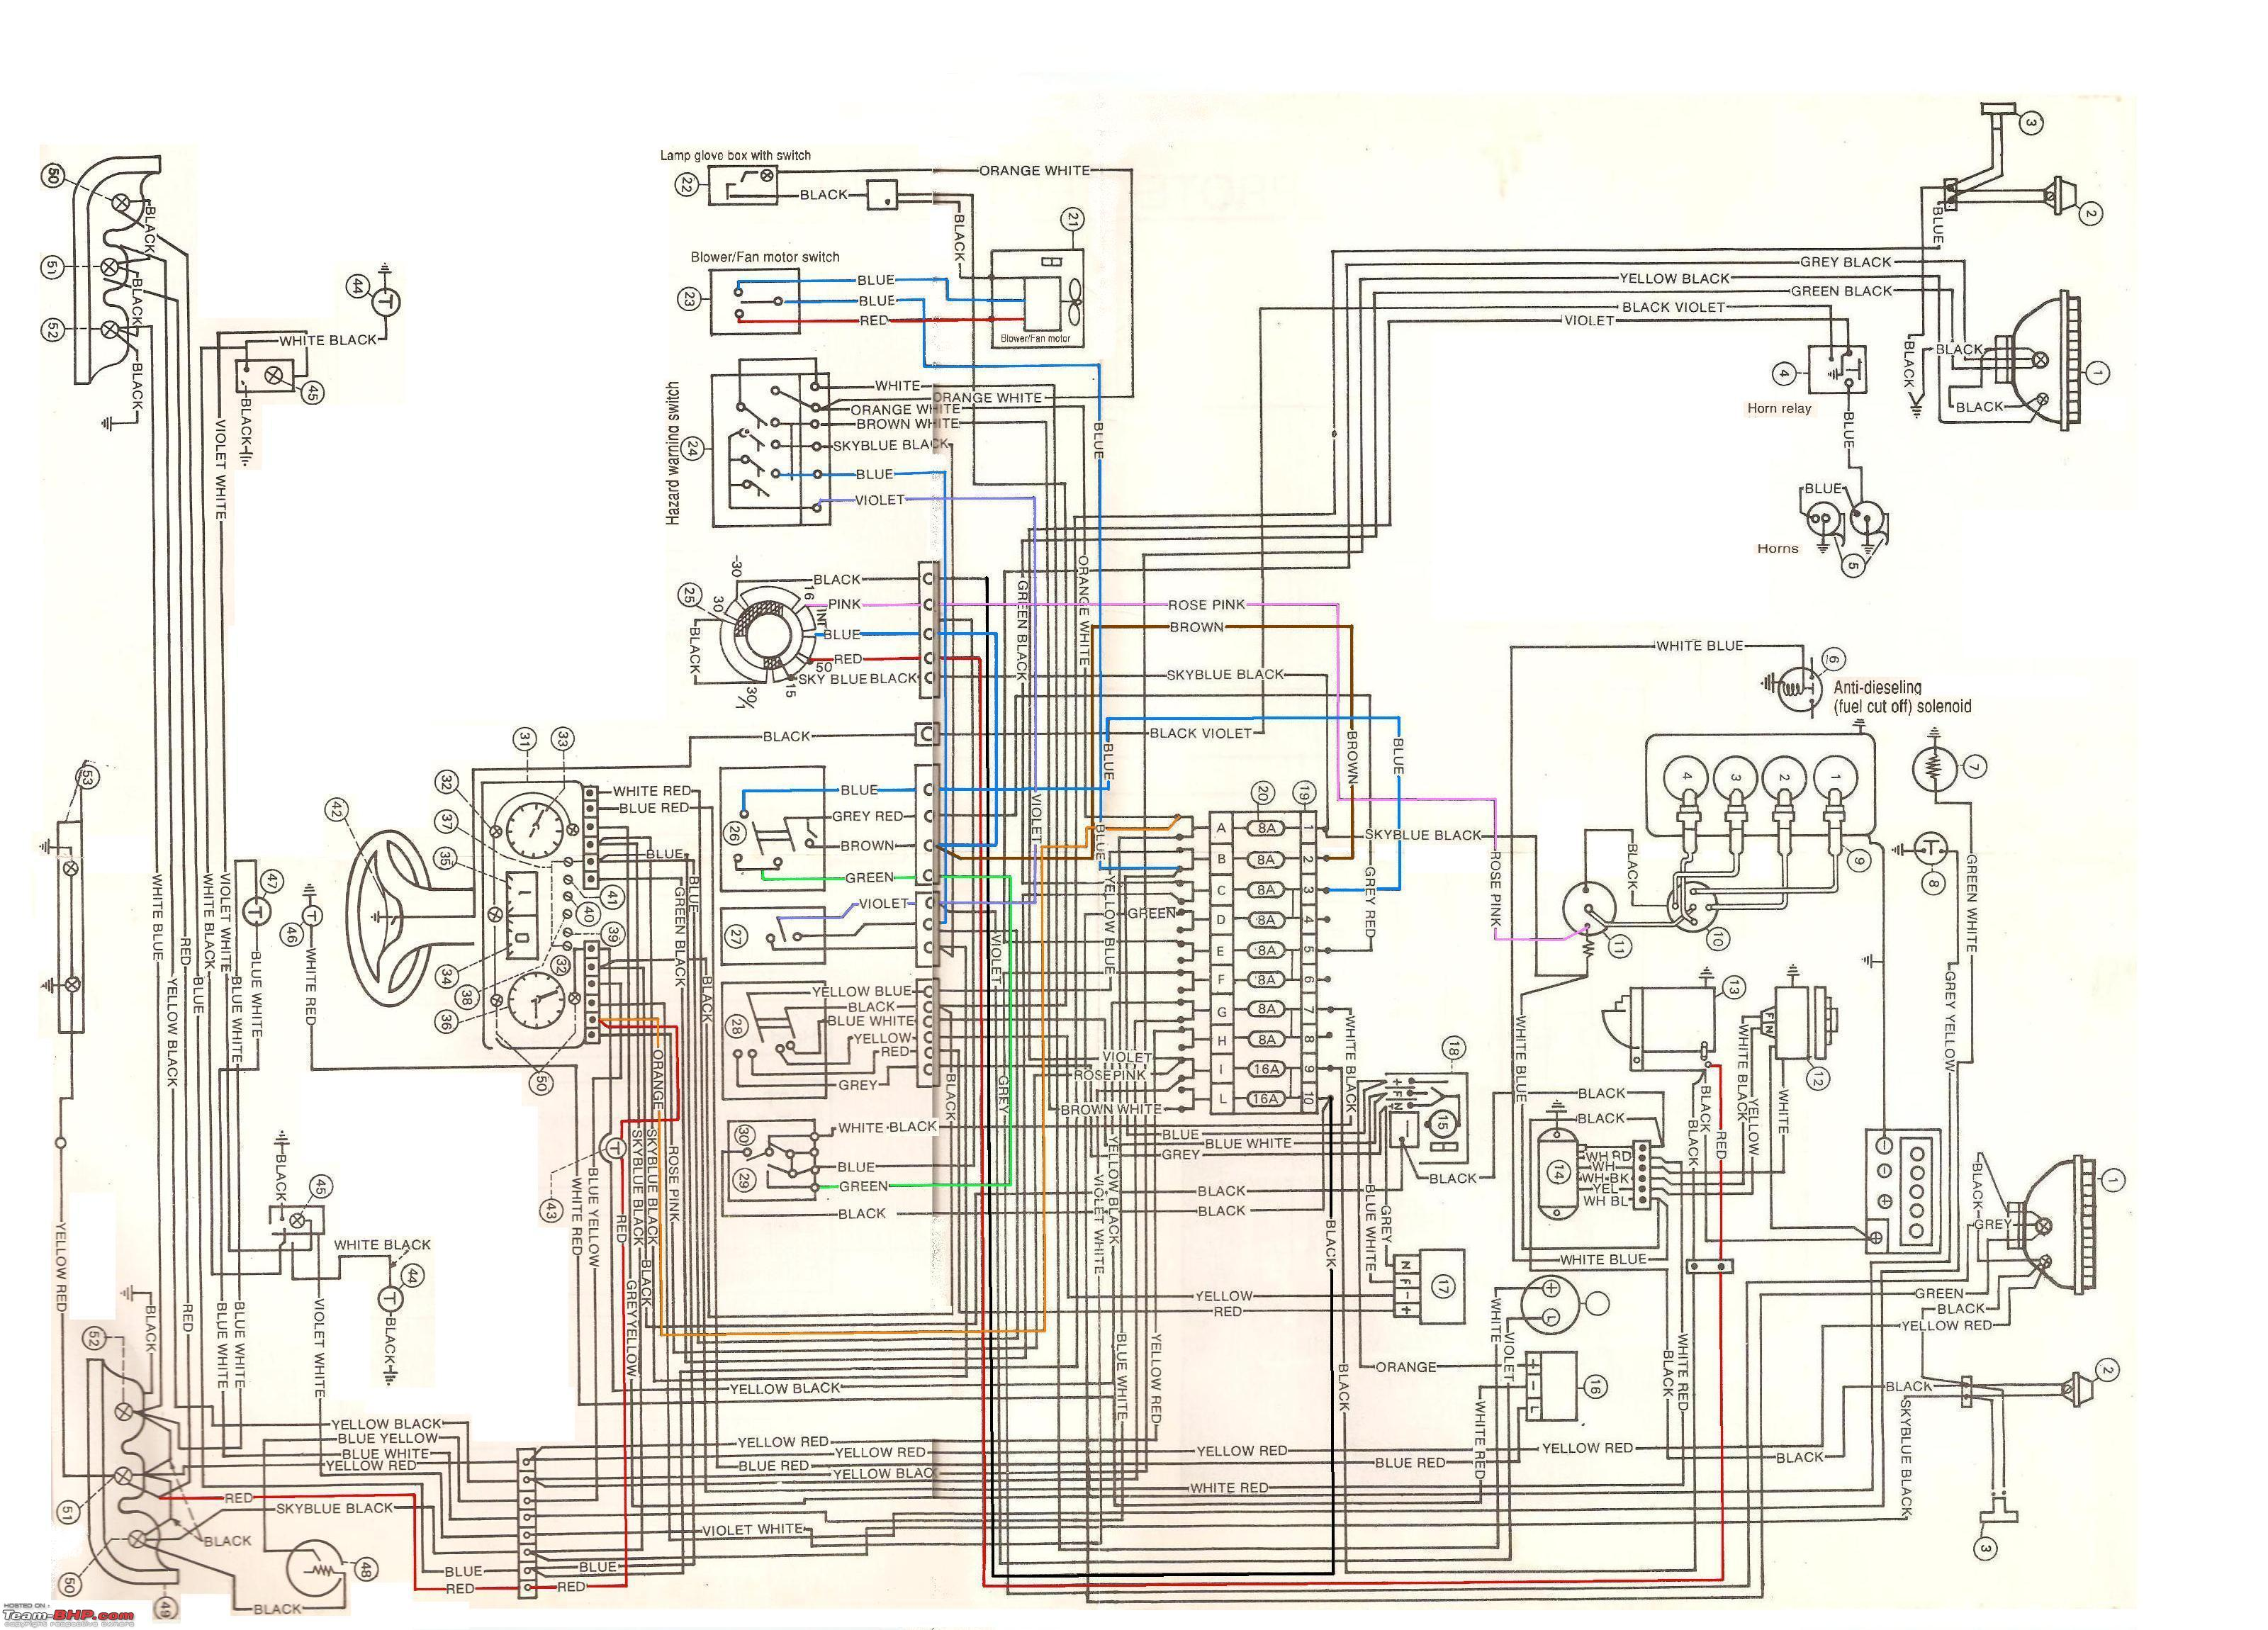 Maruti+800+Wiring+Diagram?t\=1508149136 maruti 800 wiring diagram pdf maruti alto lxi wiring electrical Electric Fan Wiring Diagram at suagrazia.org